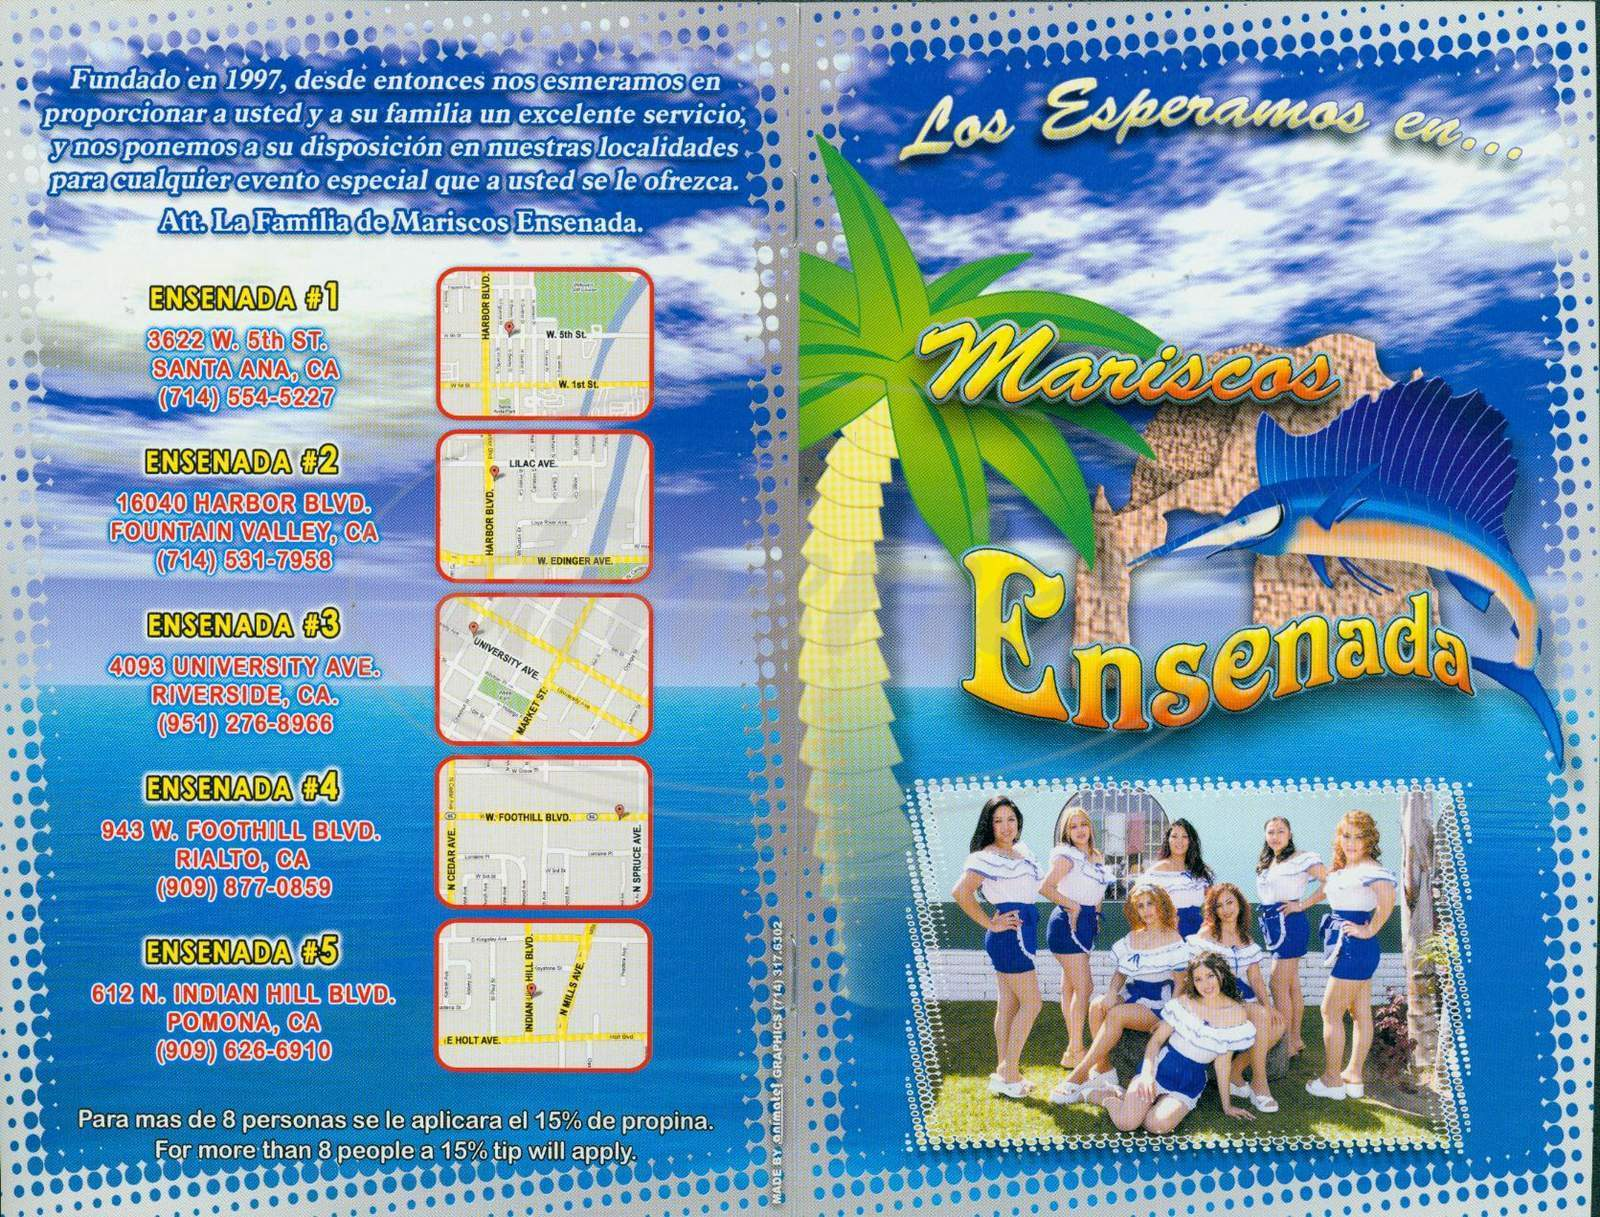 menu for Mariscos Ensenada